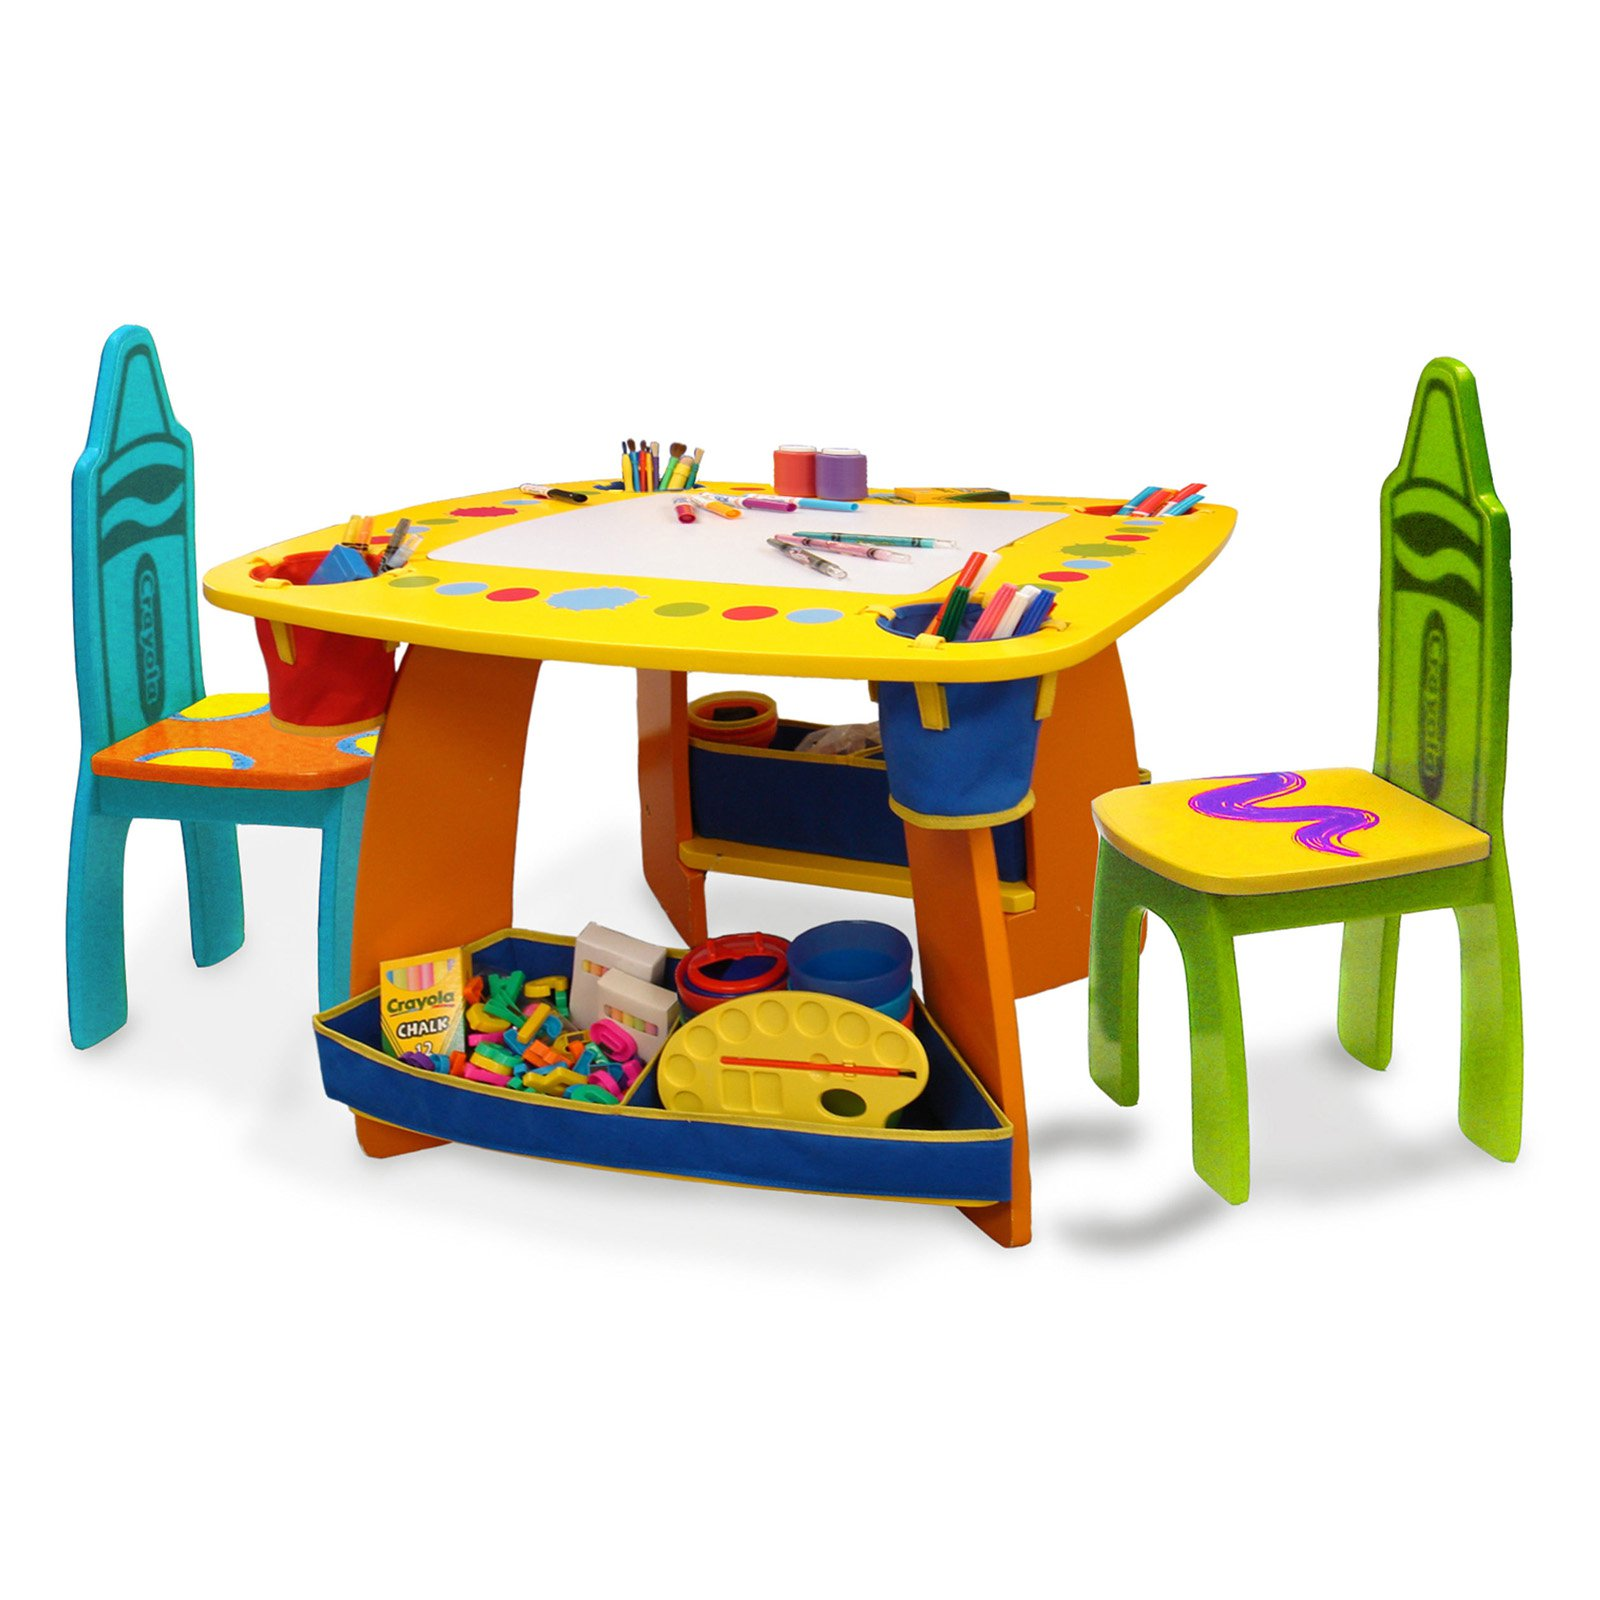 Kids table and chairs 3-piece childrenu0027s table and chairs, espresso - walmart.com CUKCYZP